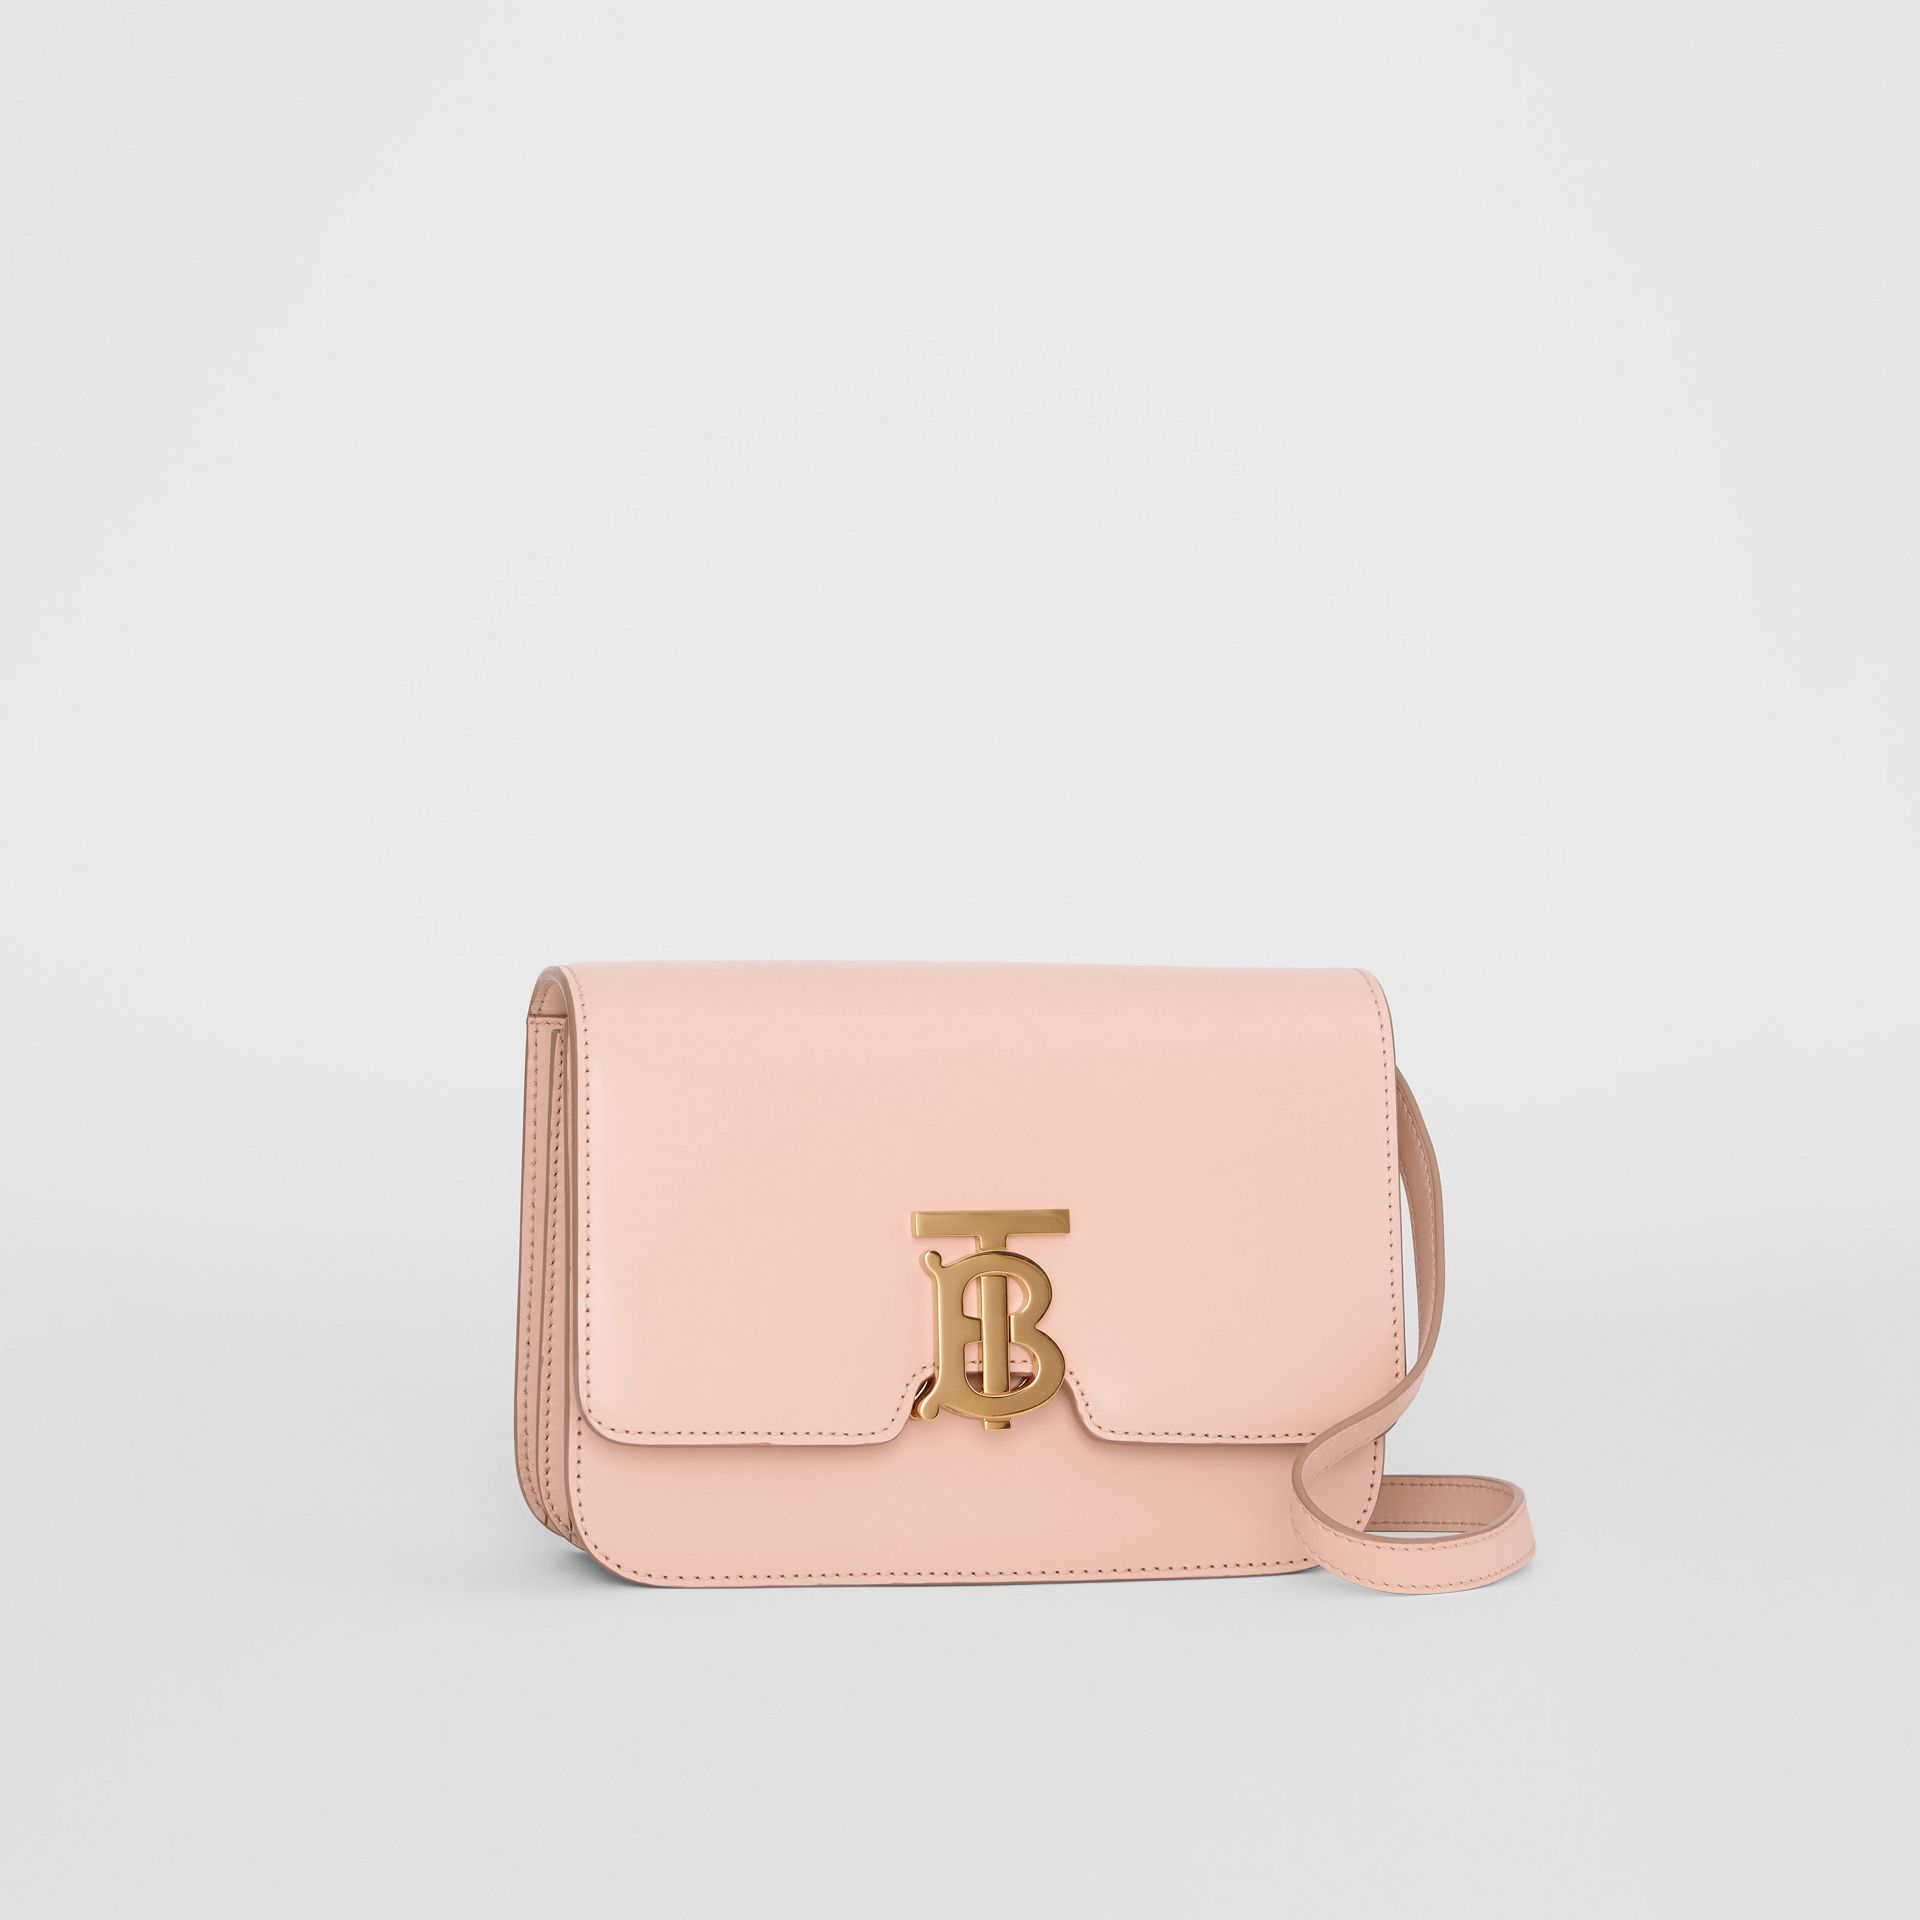 Small Leather TB Bag in Rose Beige - Women | Burberry - gallery image 6